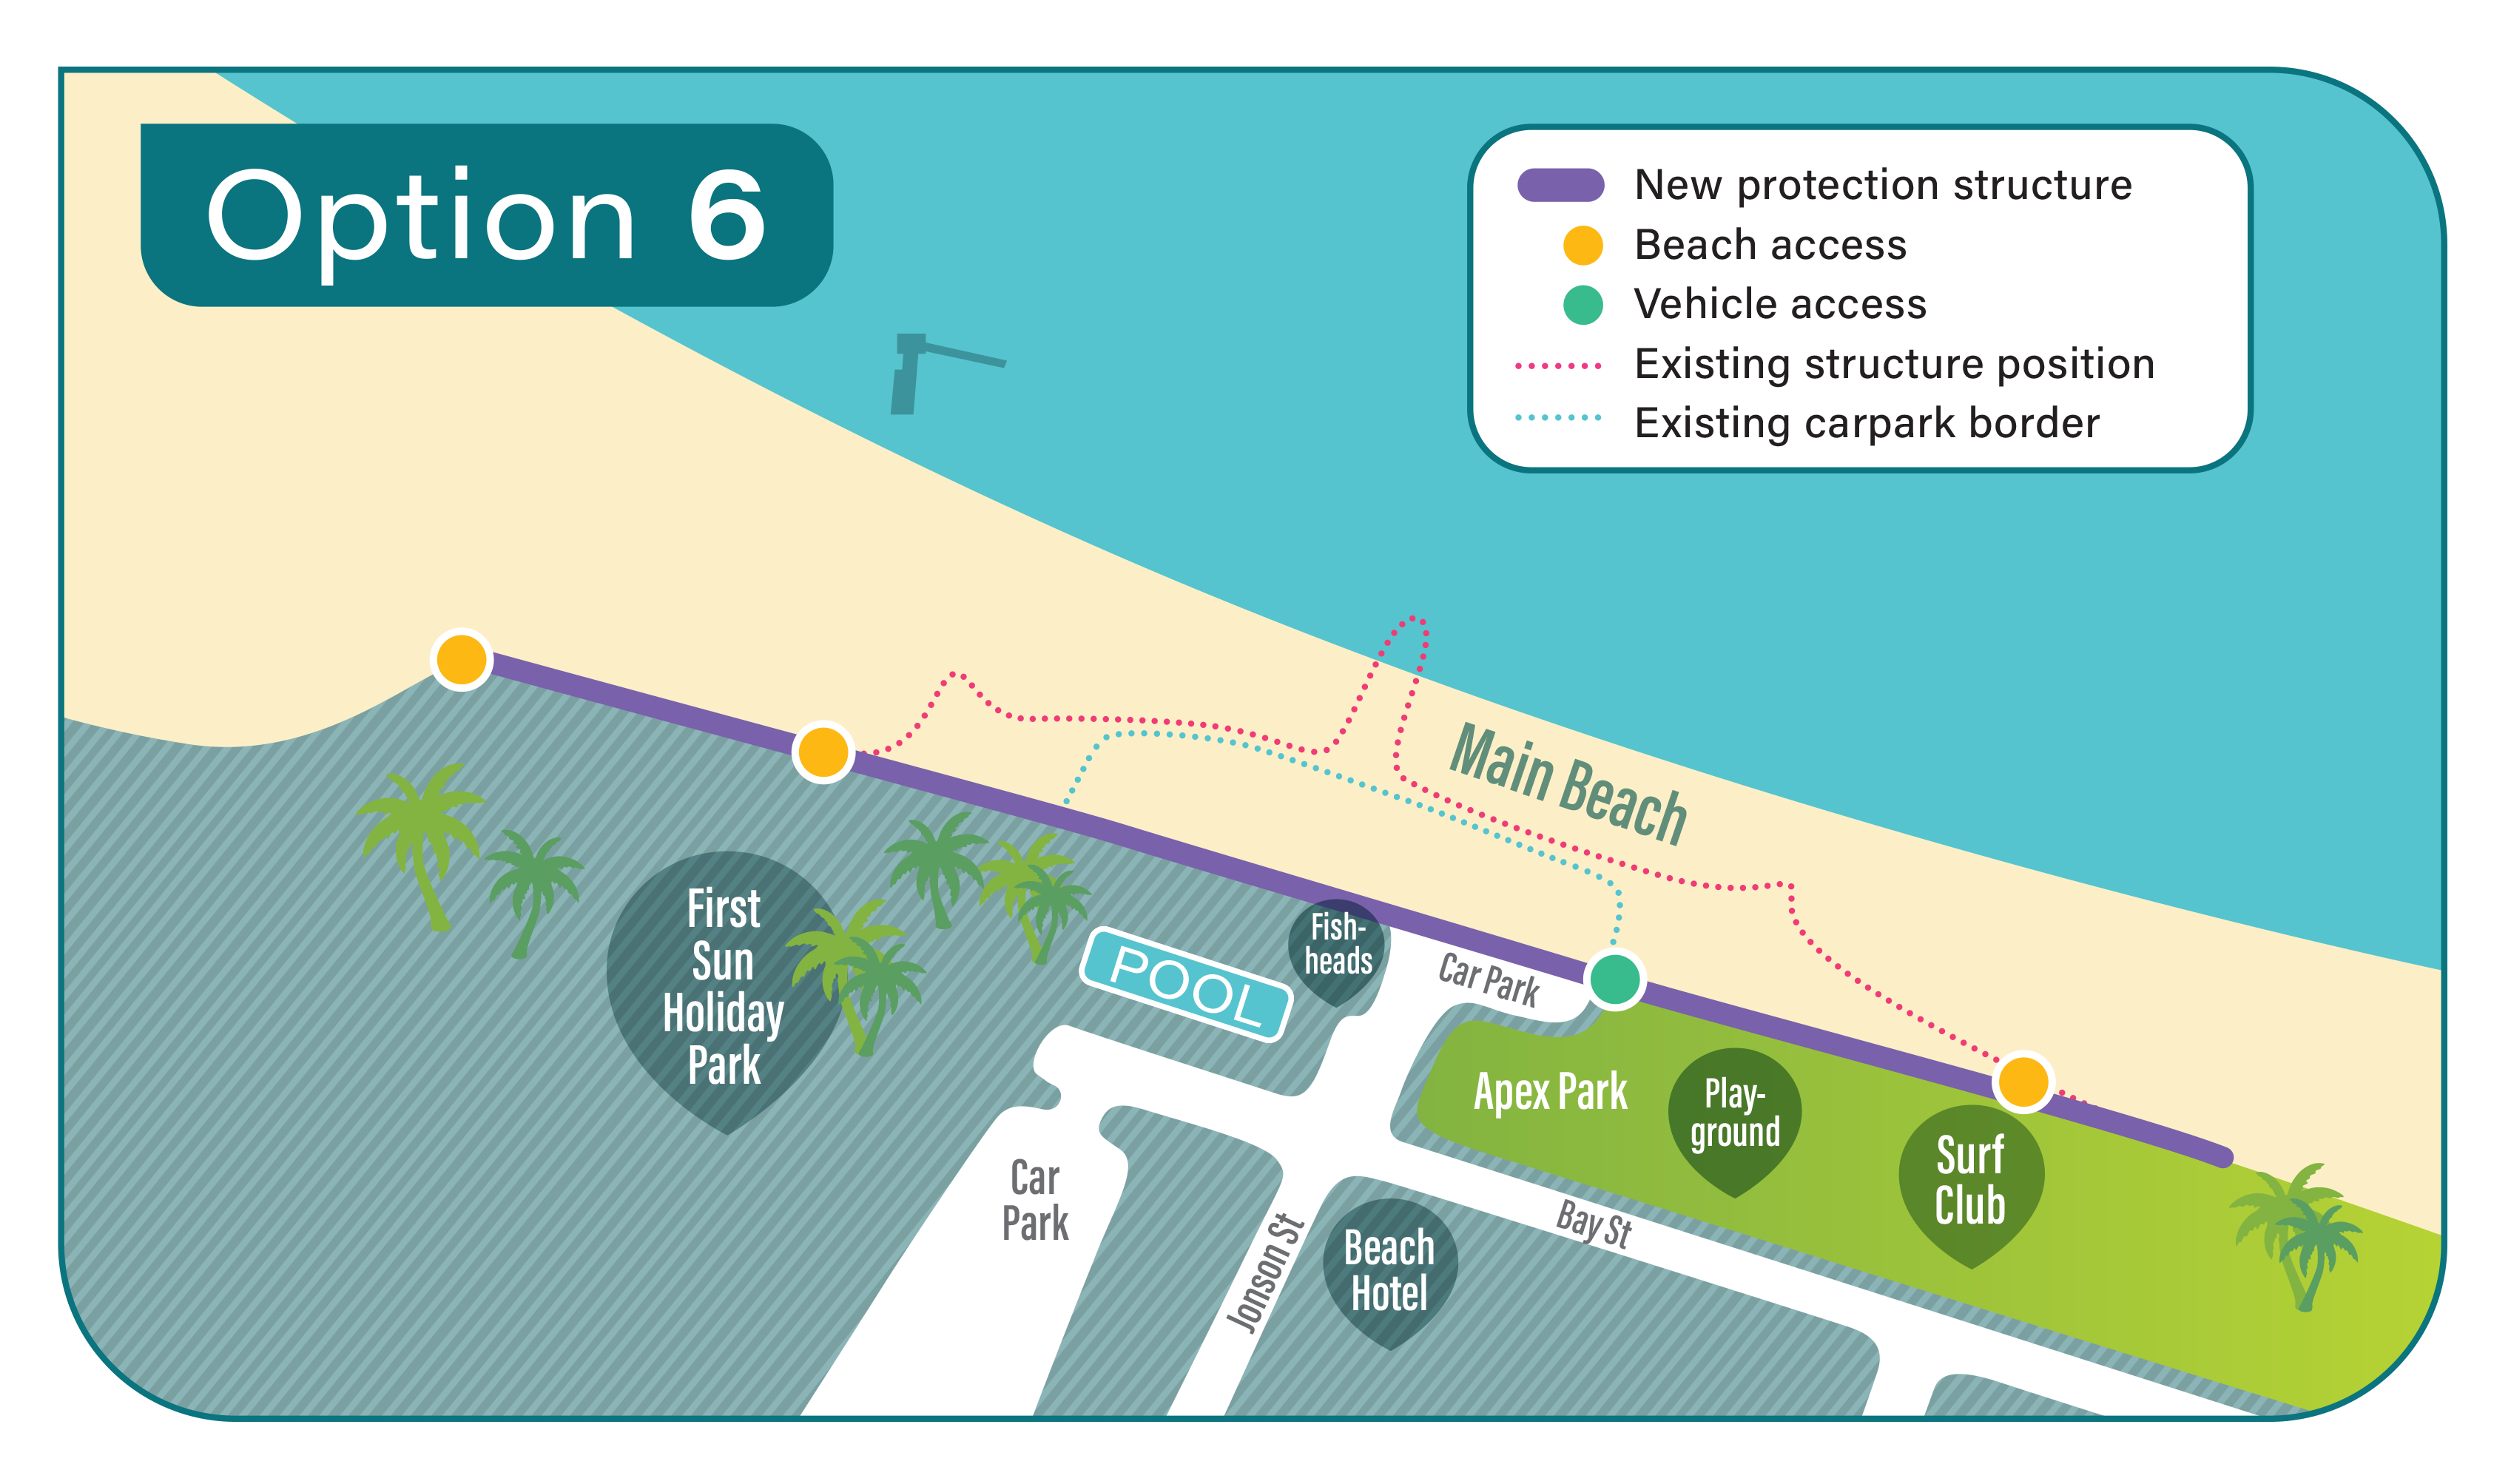 • Option 6 new protection structure, beach access, vehicle access, existing structure position, existing carpark border.